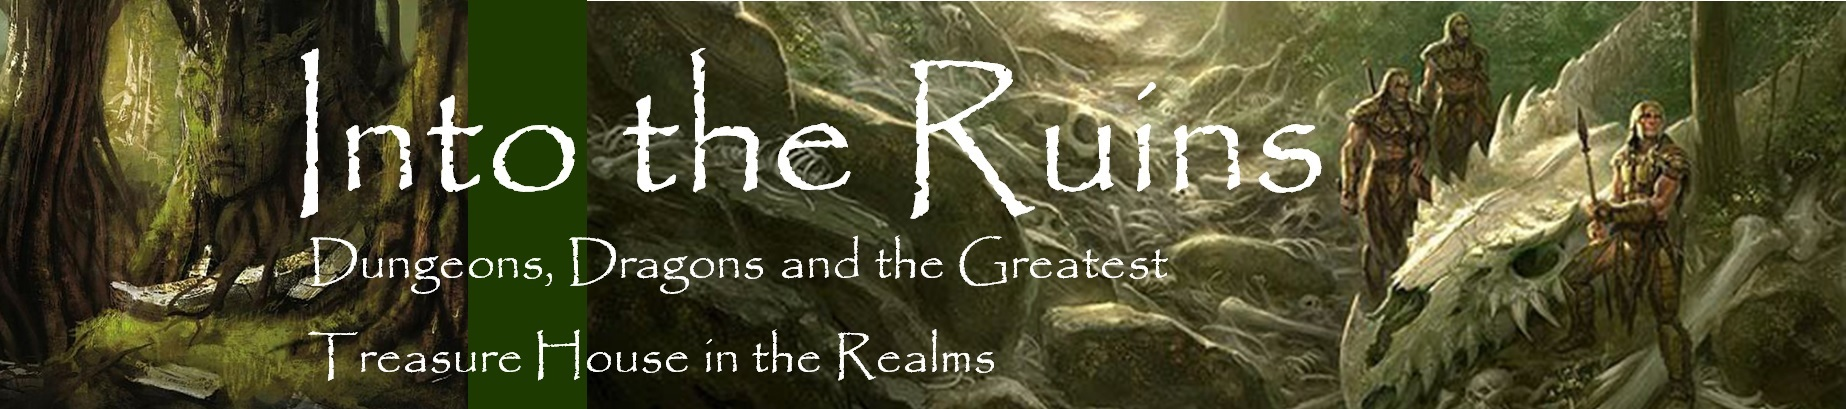 Into the ruins banner